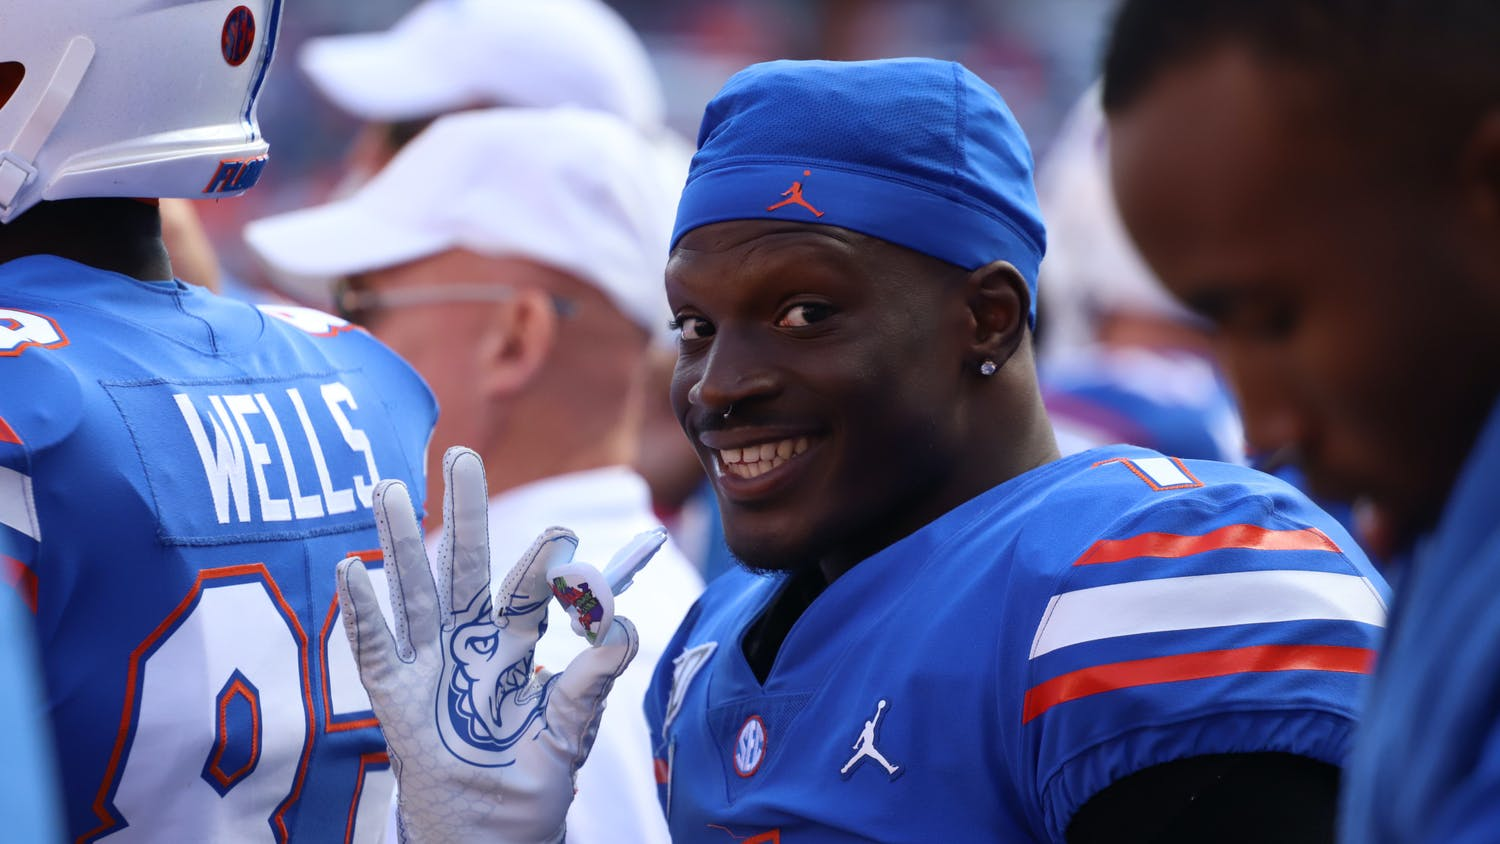 Kadarius Toney holds his Joker-themed mouth guard in his right hand as he waves at the camera during Florida's game against Vanderbilt on Nov. 9, 2019.